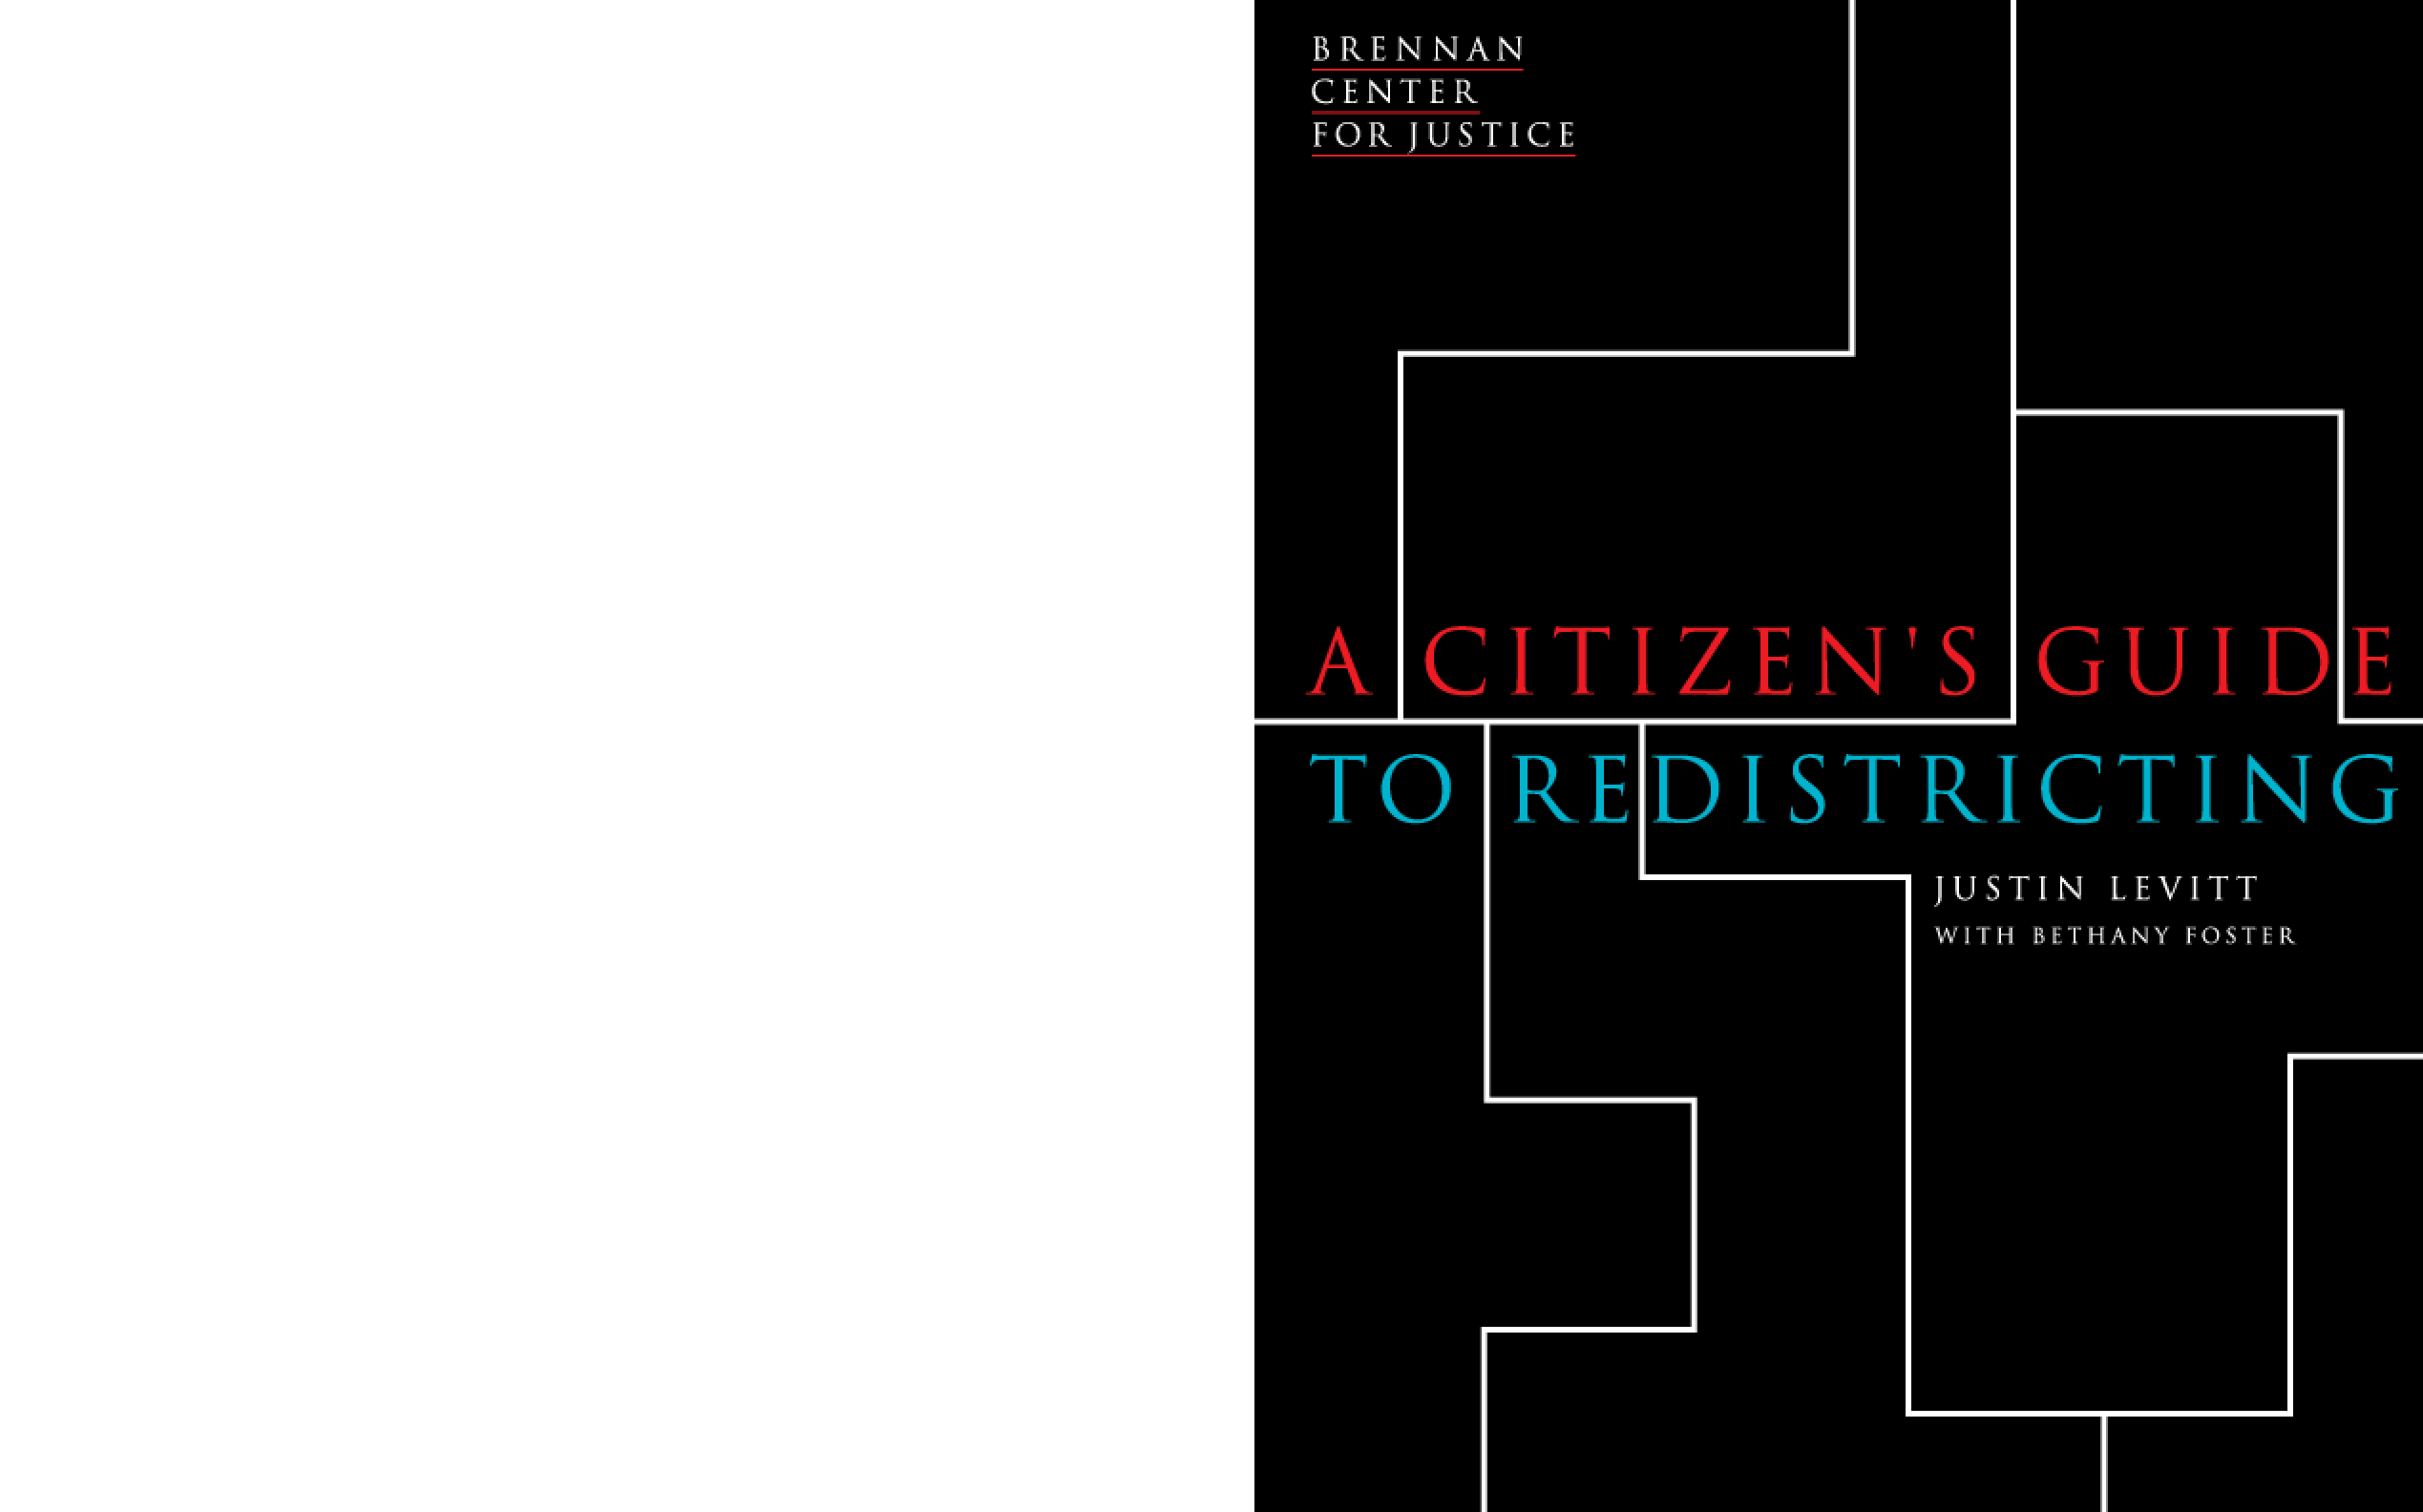 A Citizen's Guide to Redistricting